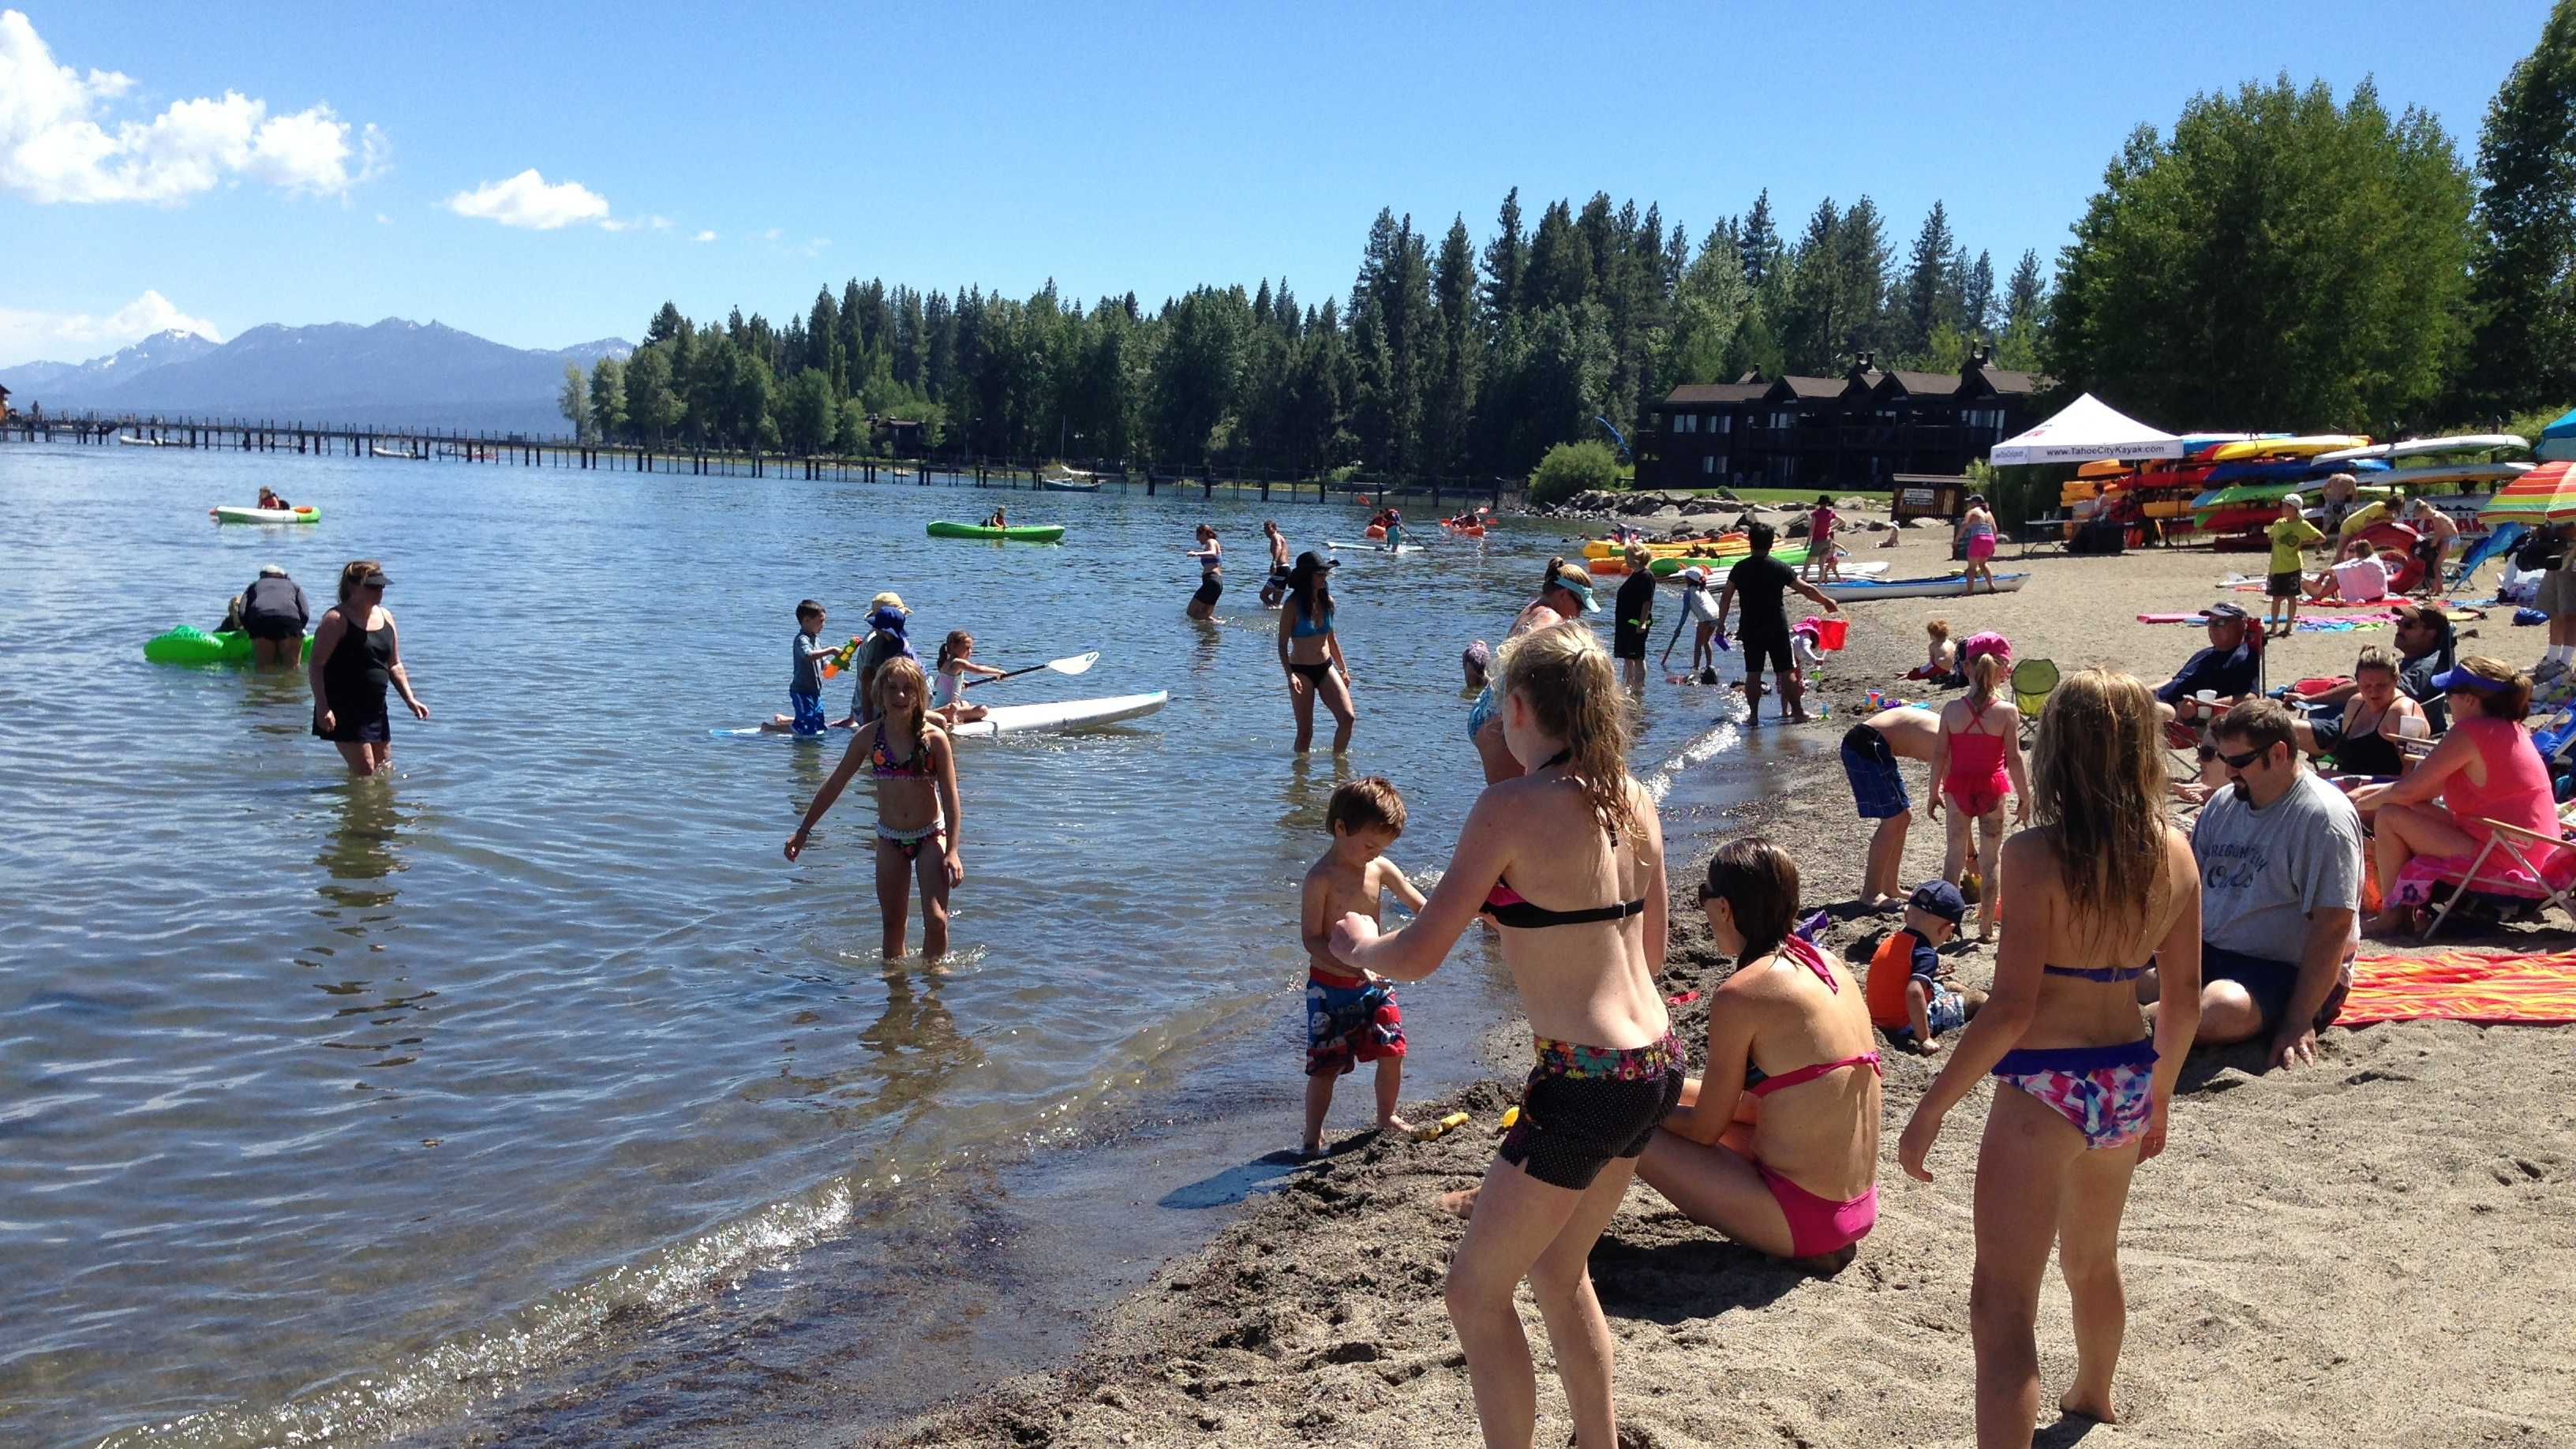 Swimmers and sunbathers enjoy Commons Beach in Tahoe City.